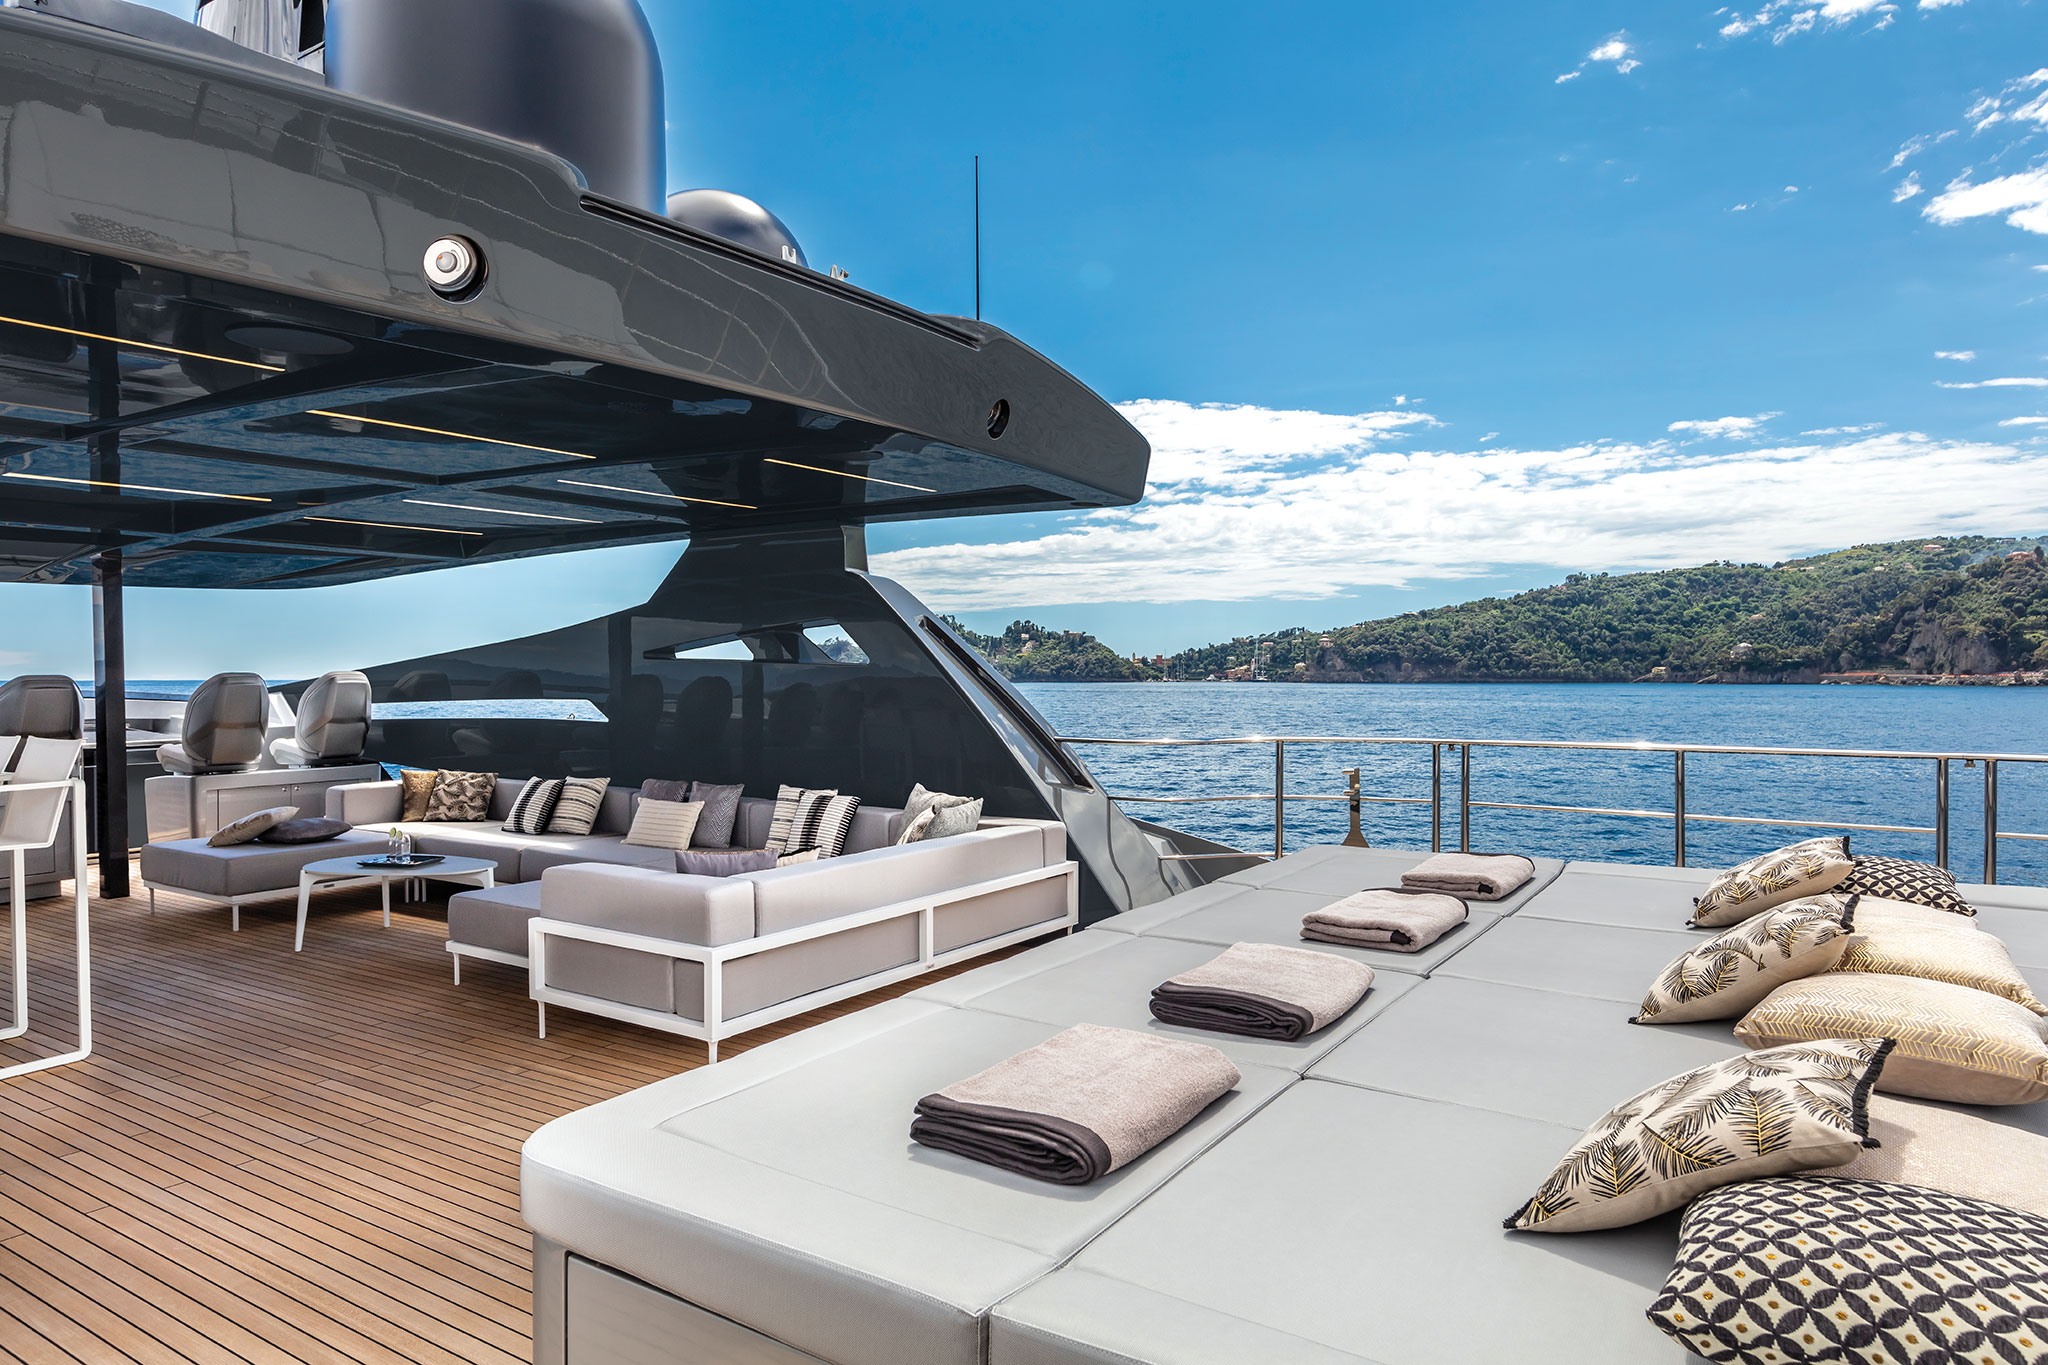 Pershing-140-sundeck-yachts-france-172